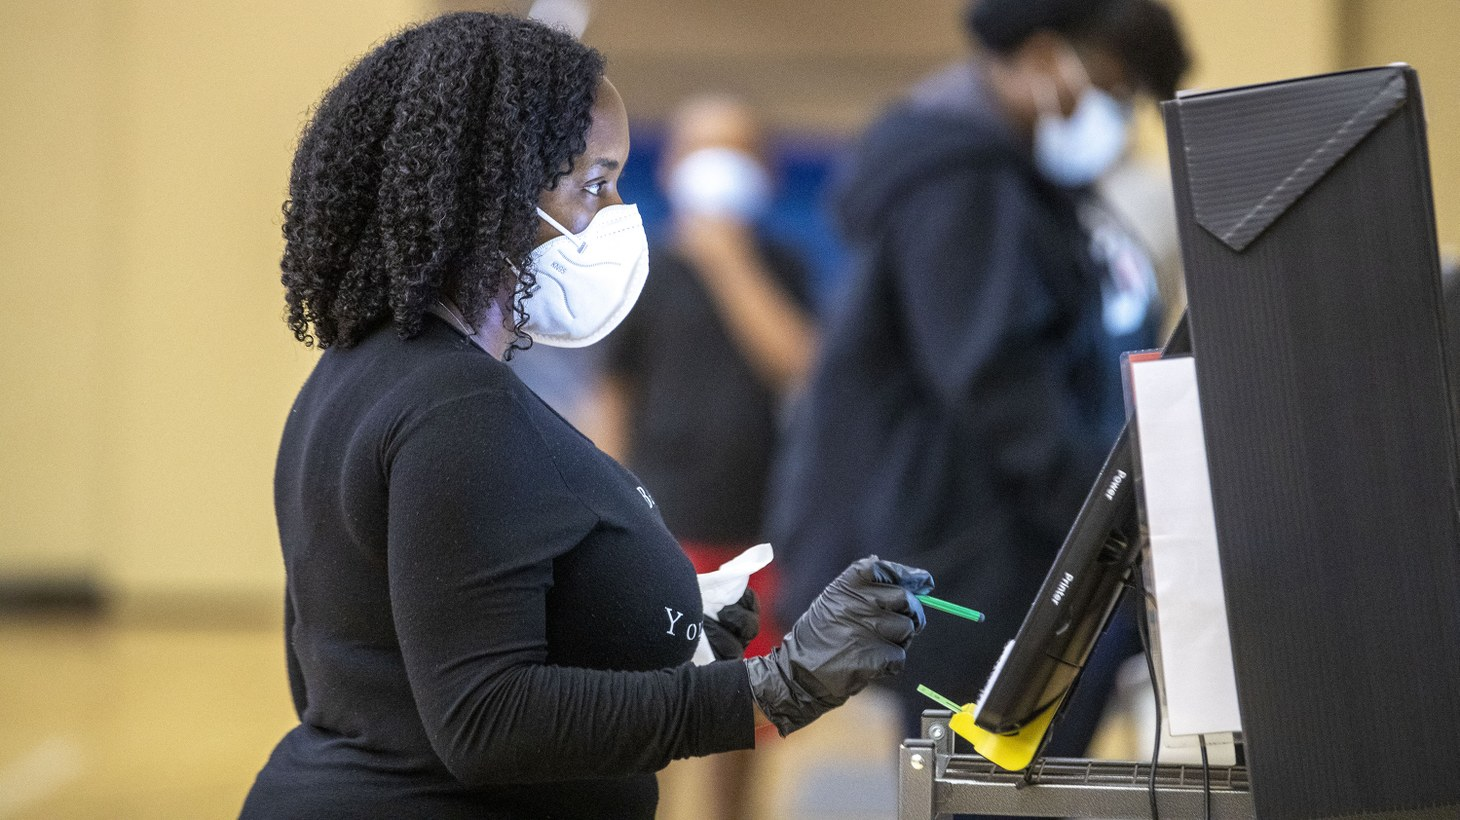 Smyrna resident LaVonya Tensley uses a stylus pen while voting on the new electronic voting machines at the Smyrna Community Center during the Georgia primary elections, Tuesday, June 9, 2020.